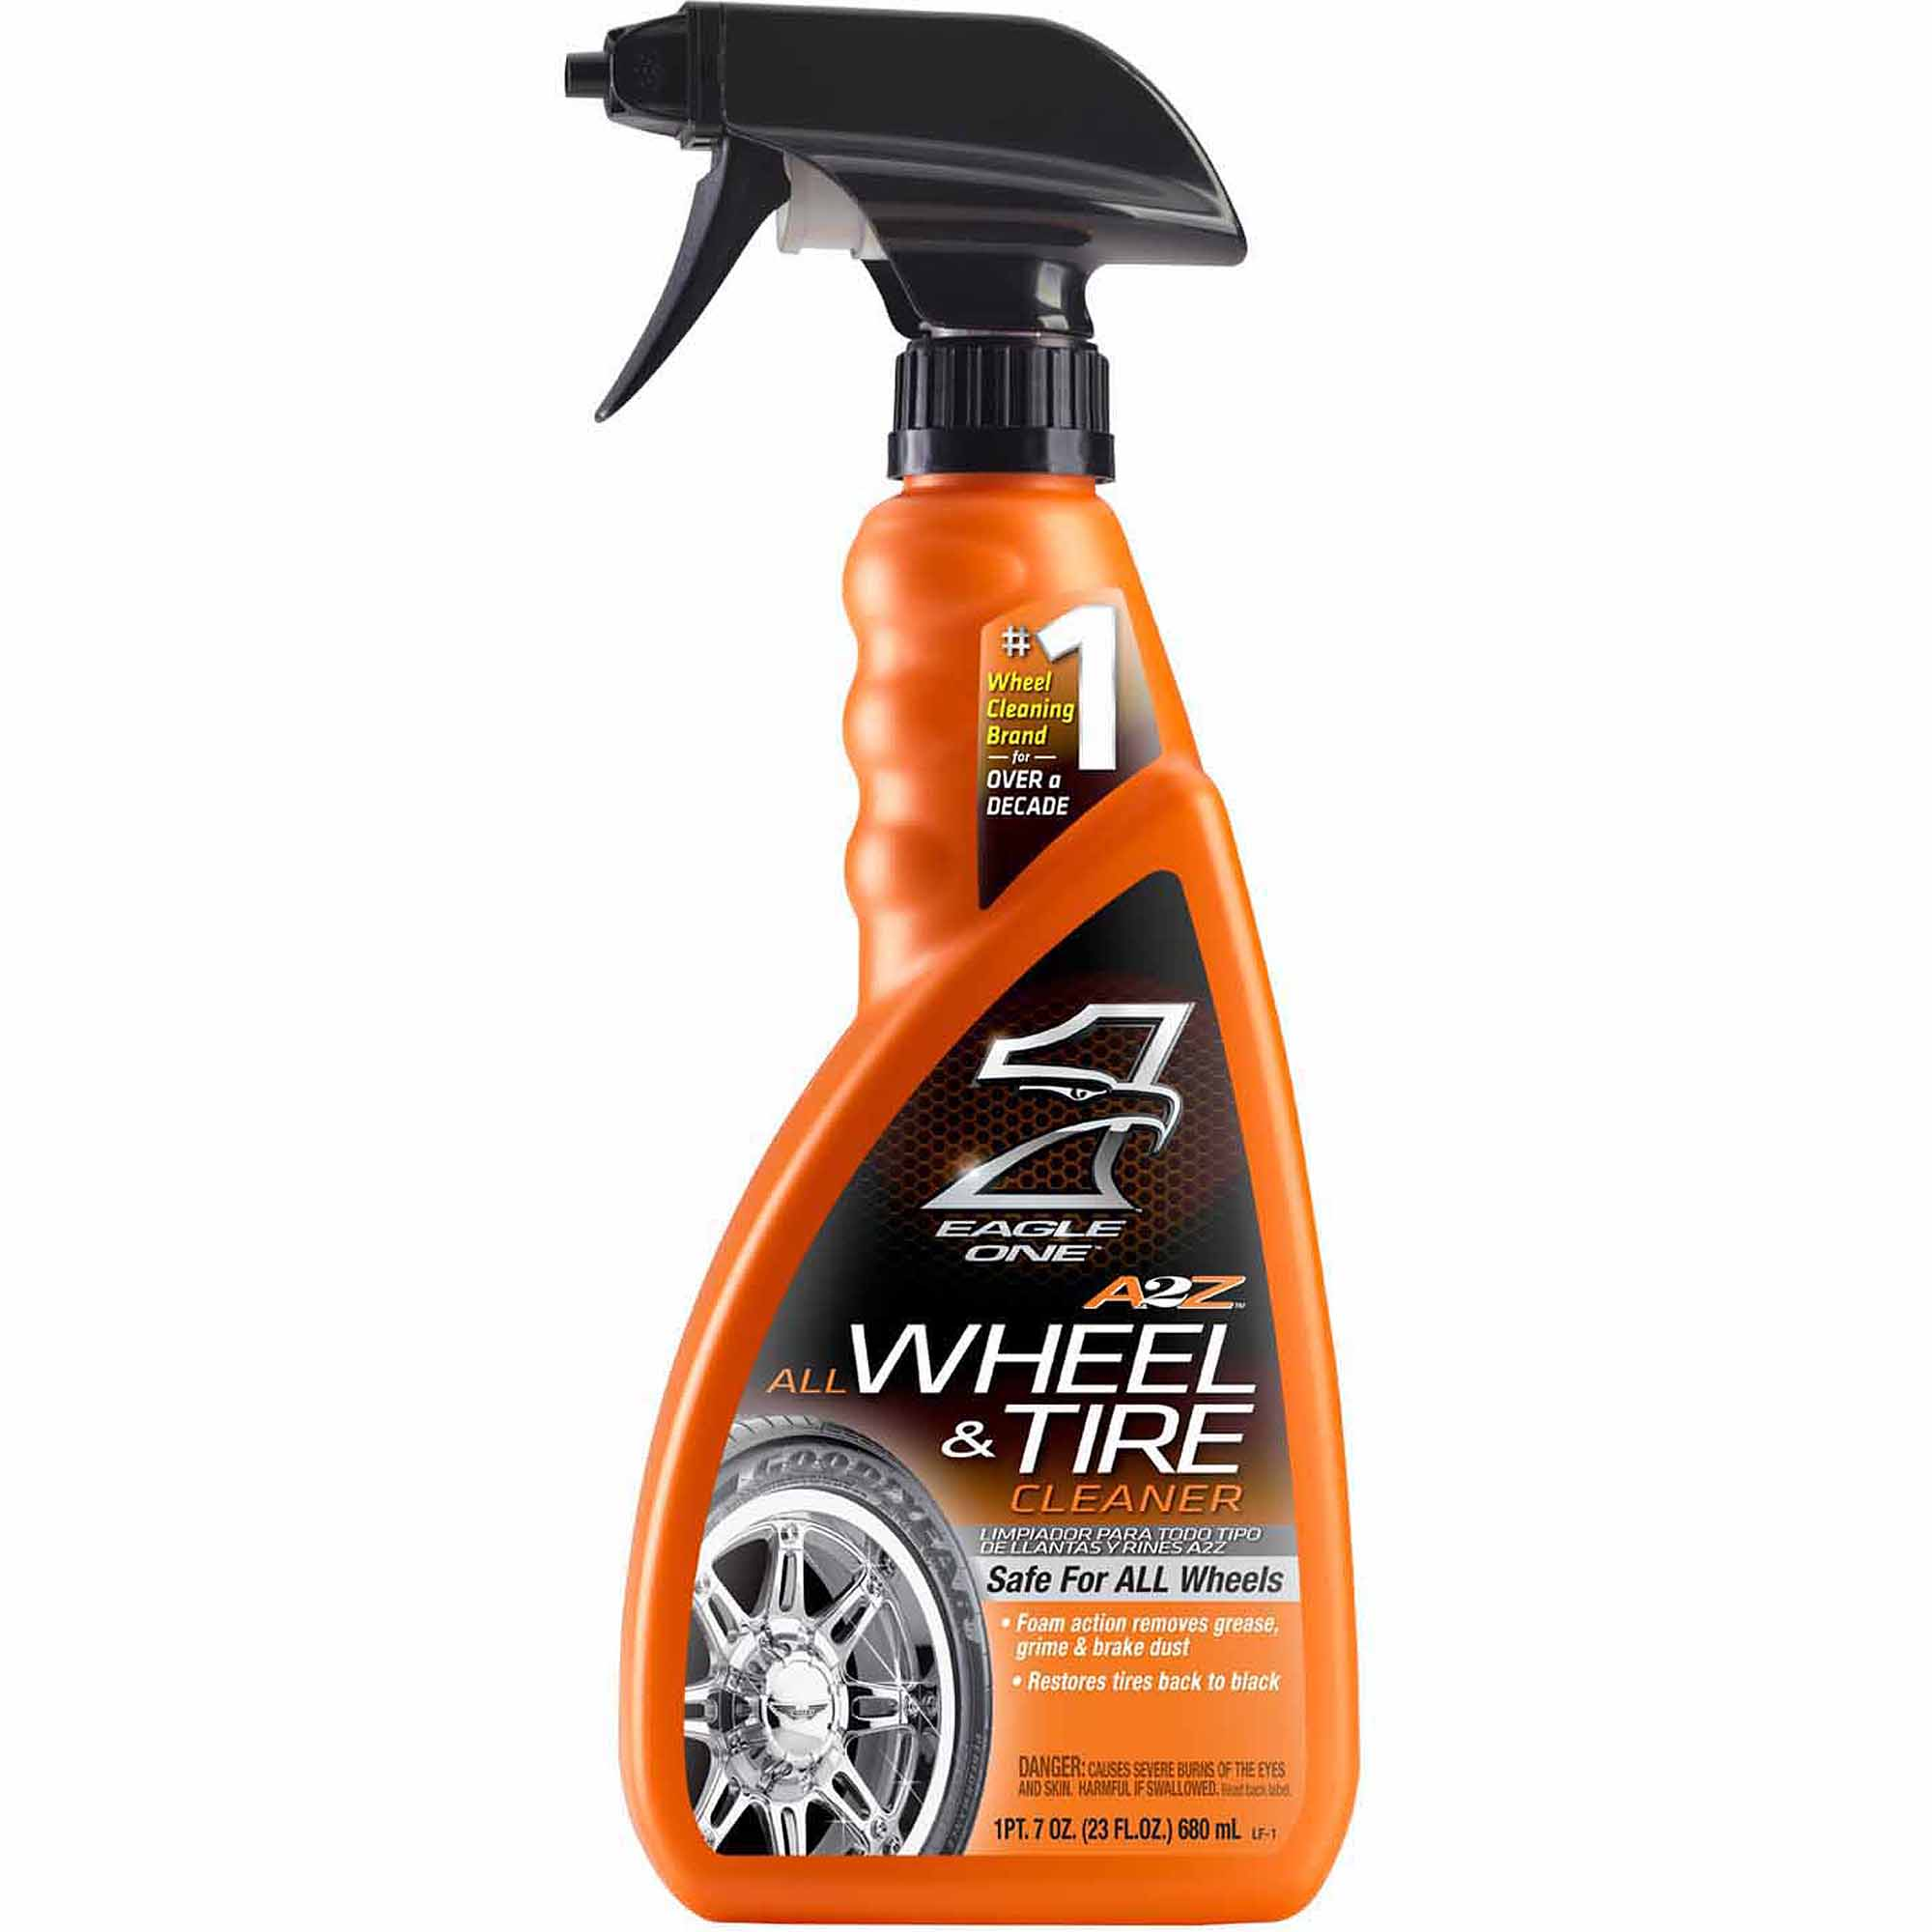 A2Z Wheel & Tire Cleaner - Eagle One